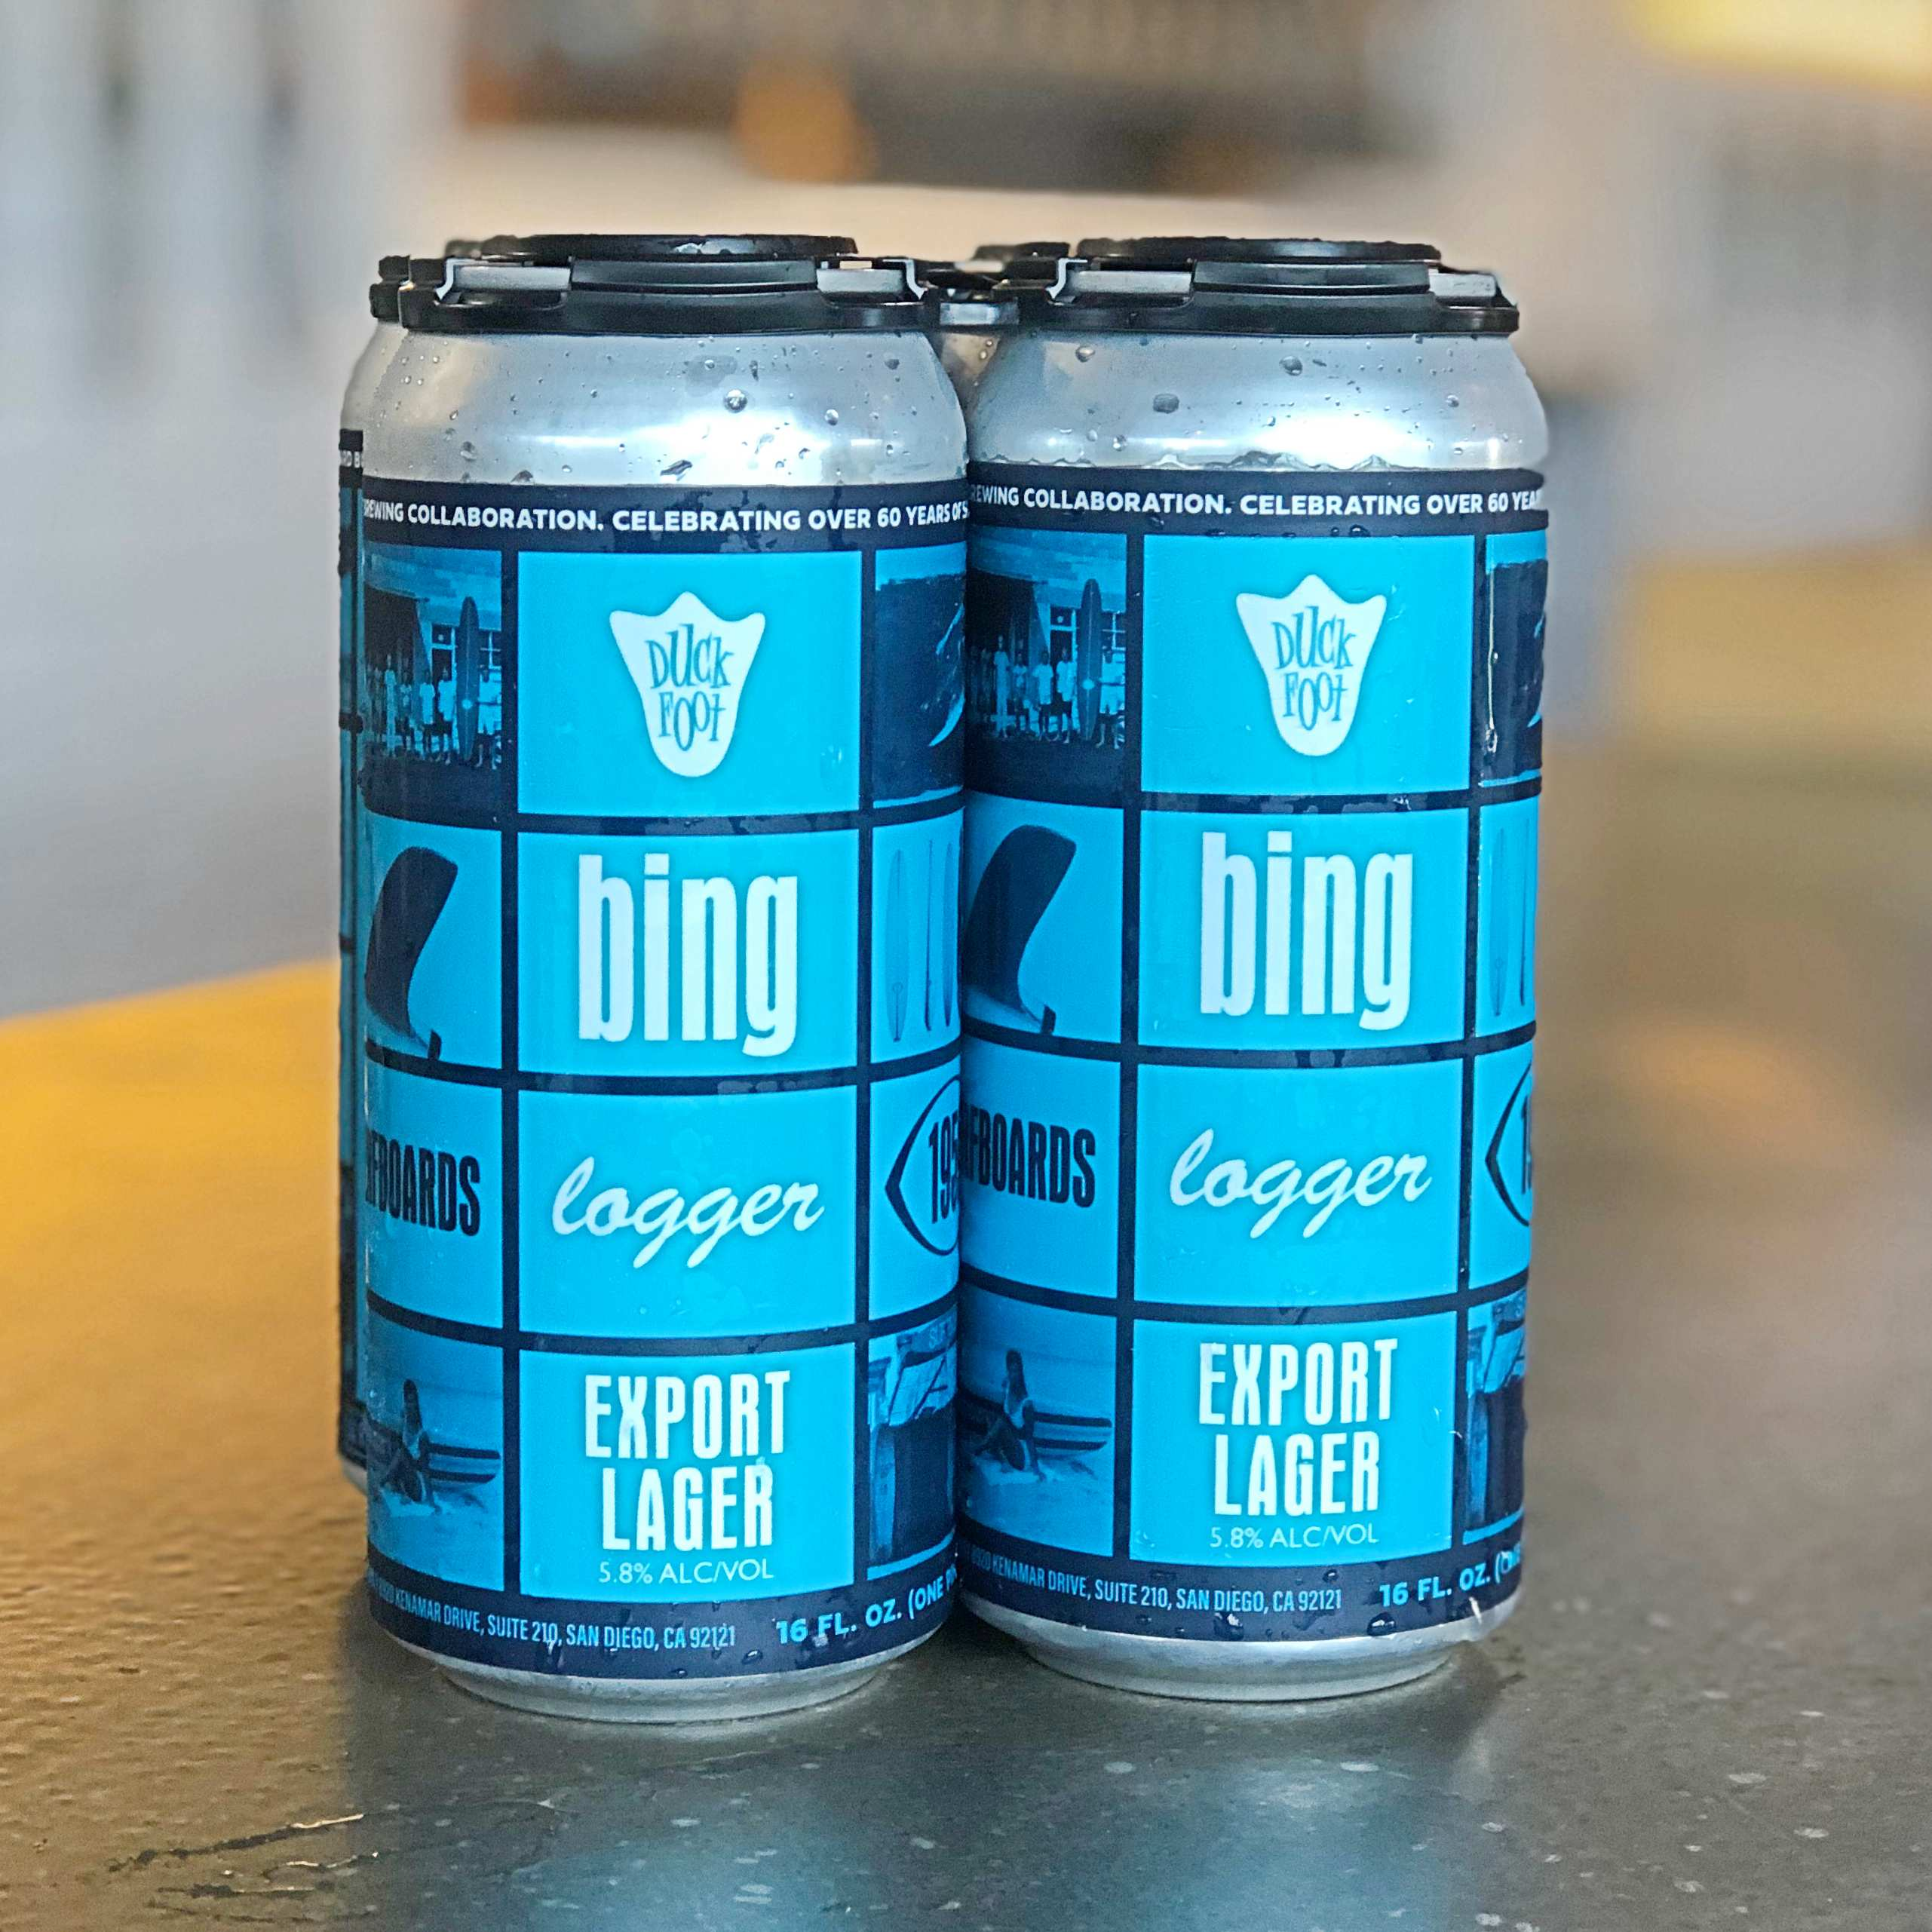 Bing Logger (3 x 4 Packs of 16oz Cans)